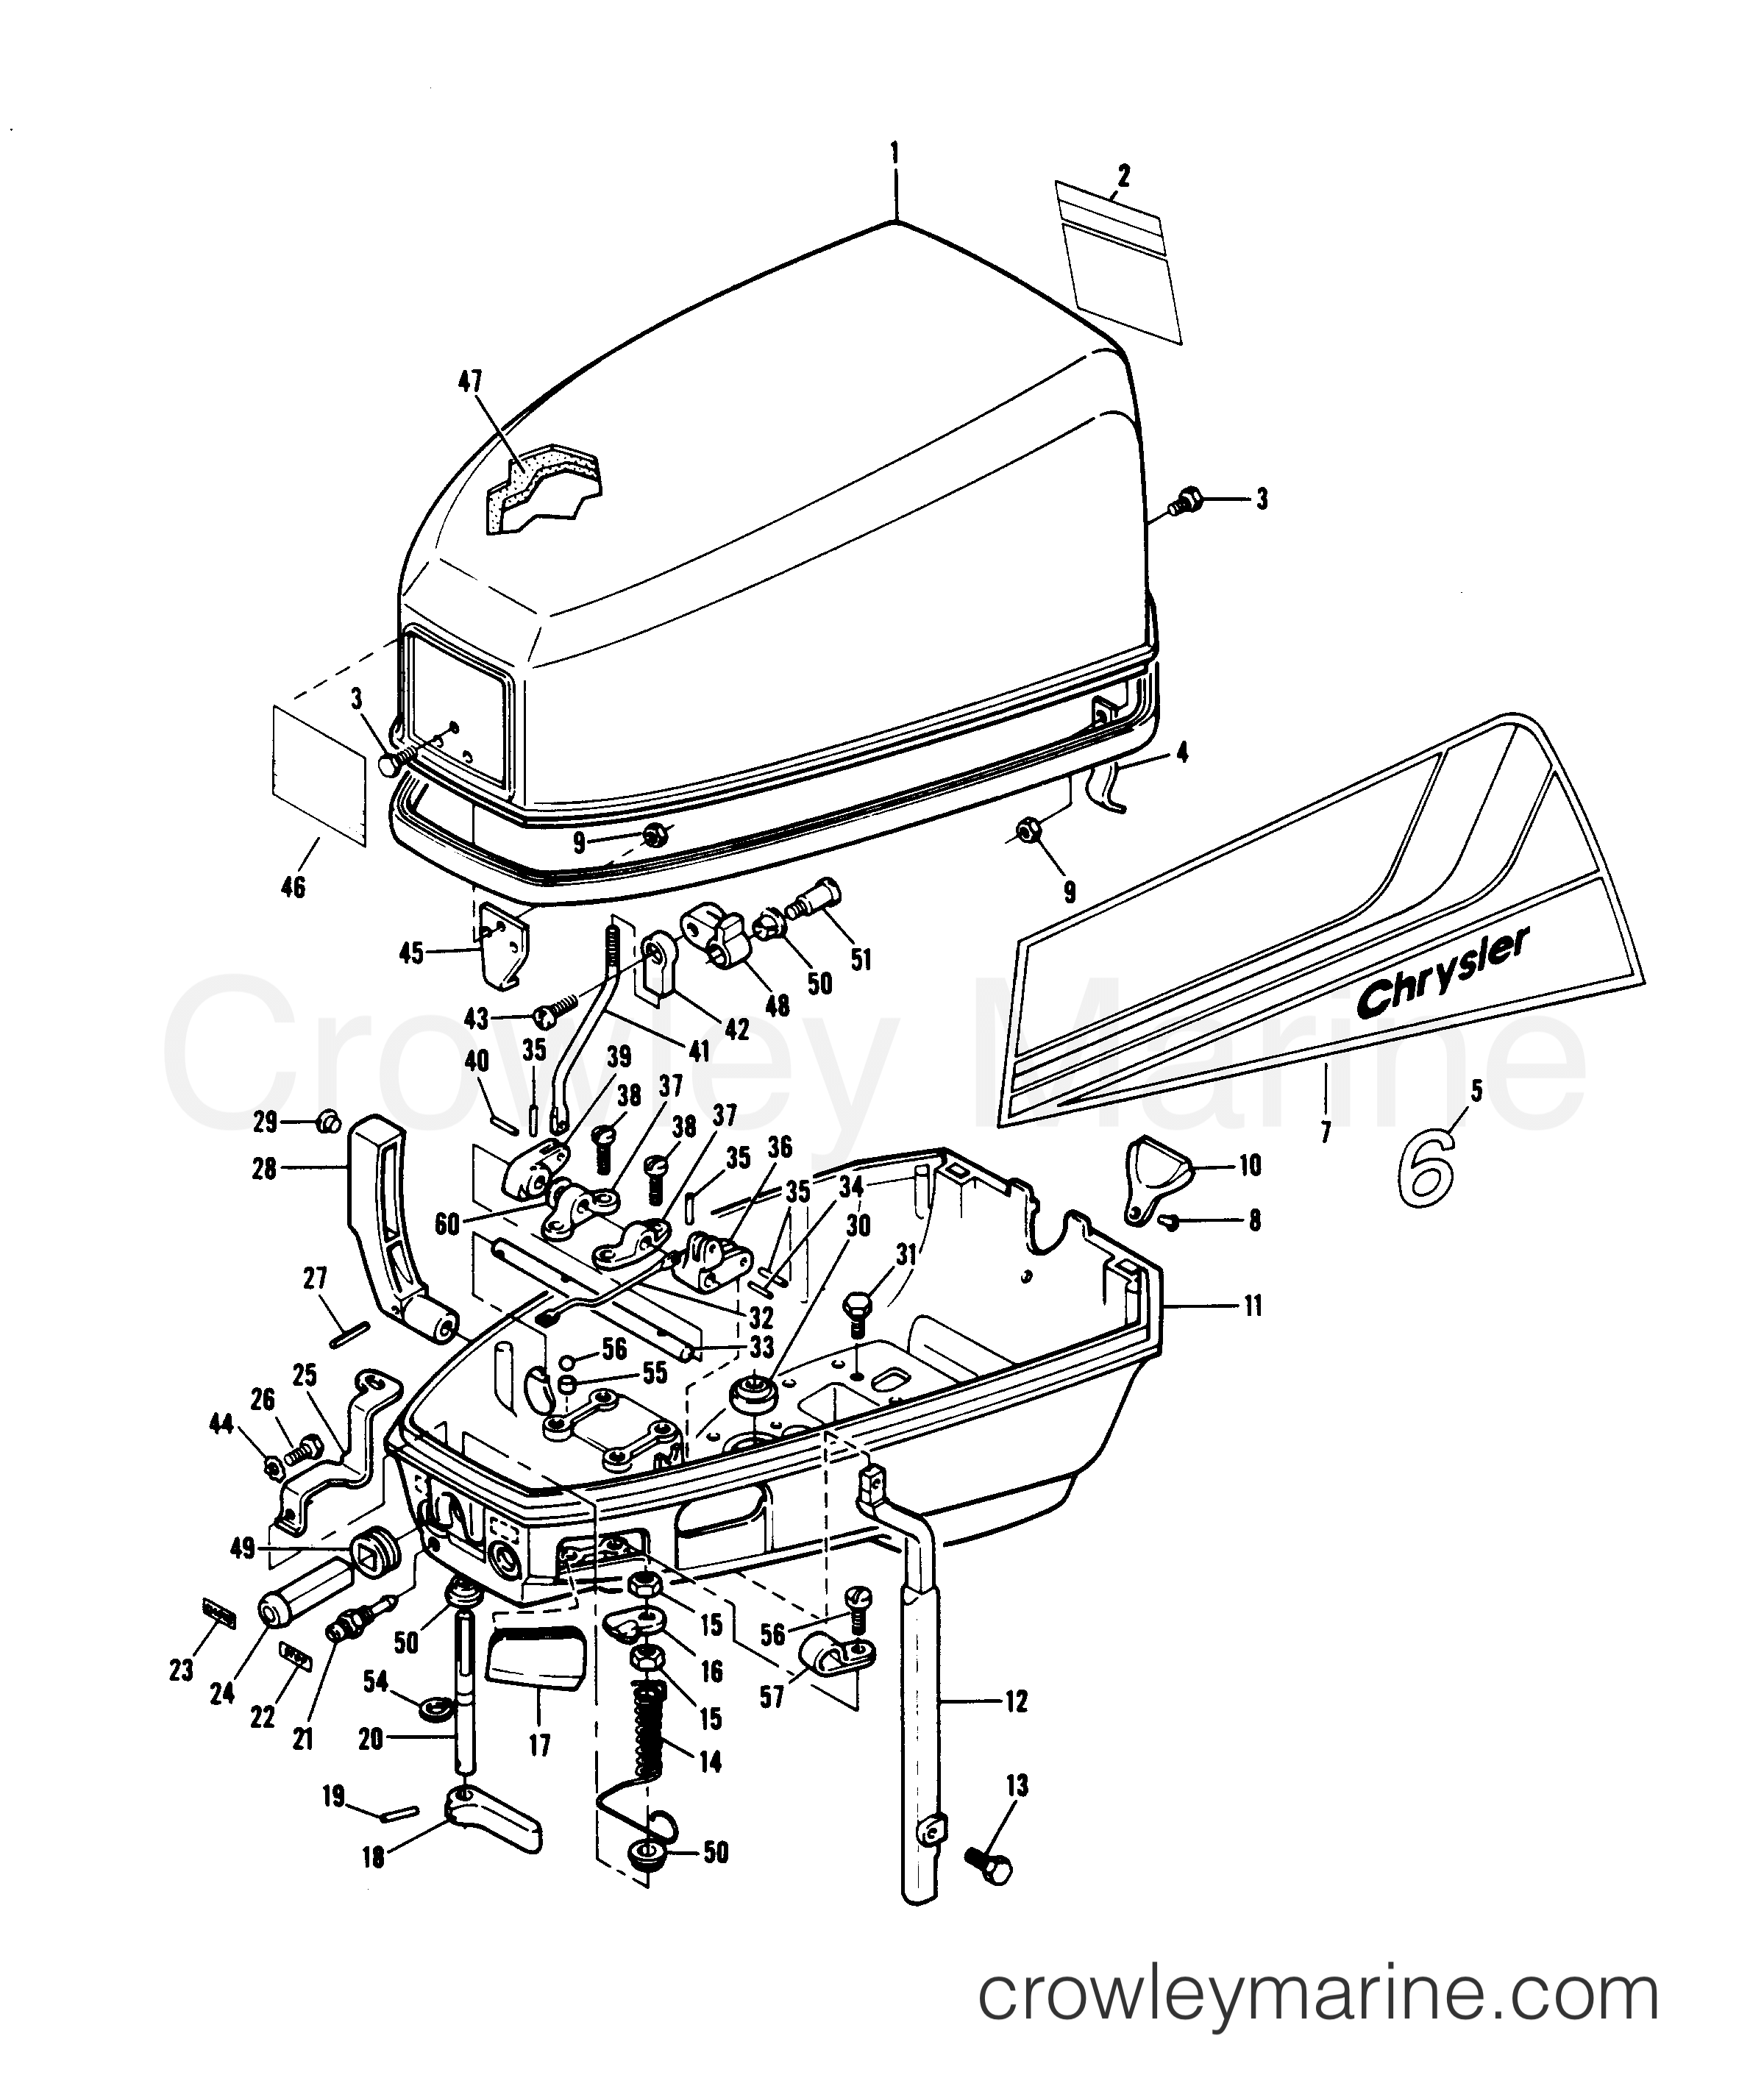 2000 vw jetta coolant hose diagram html